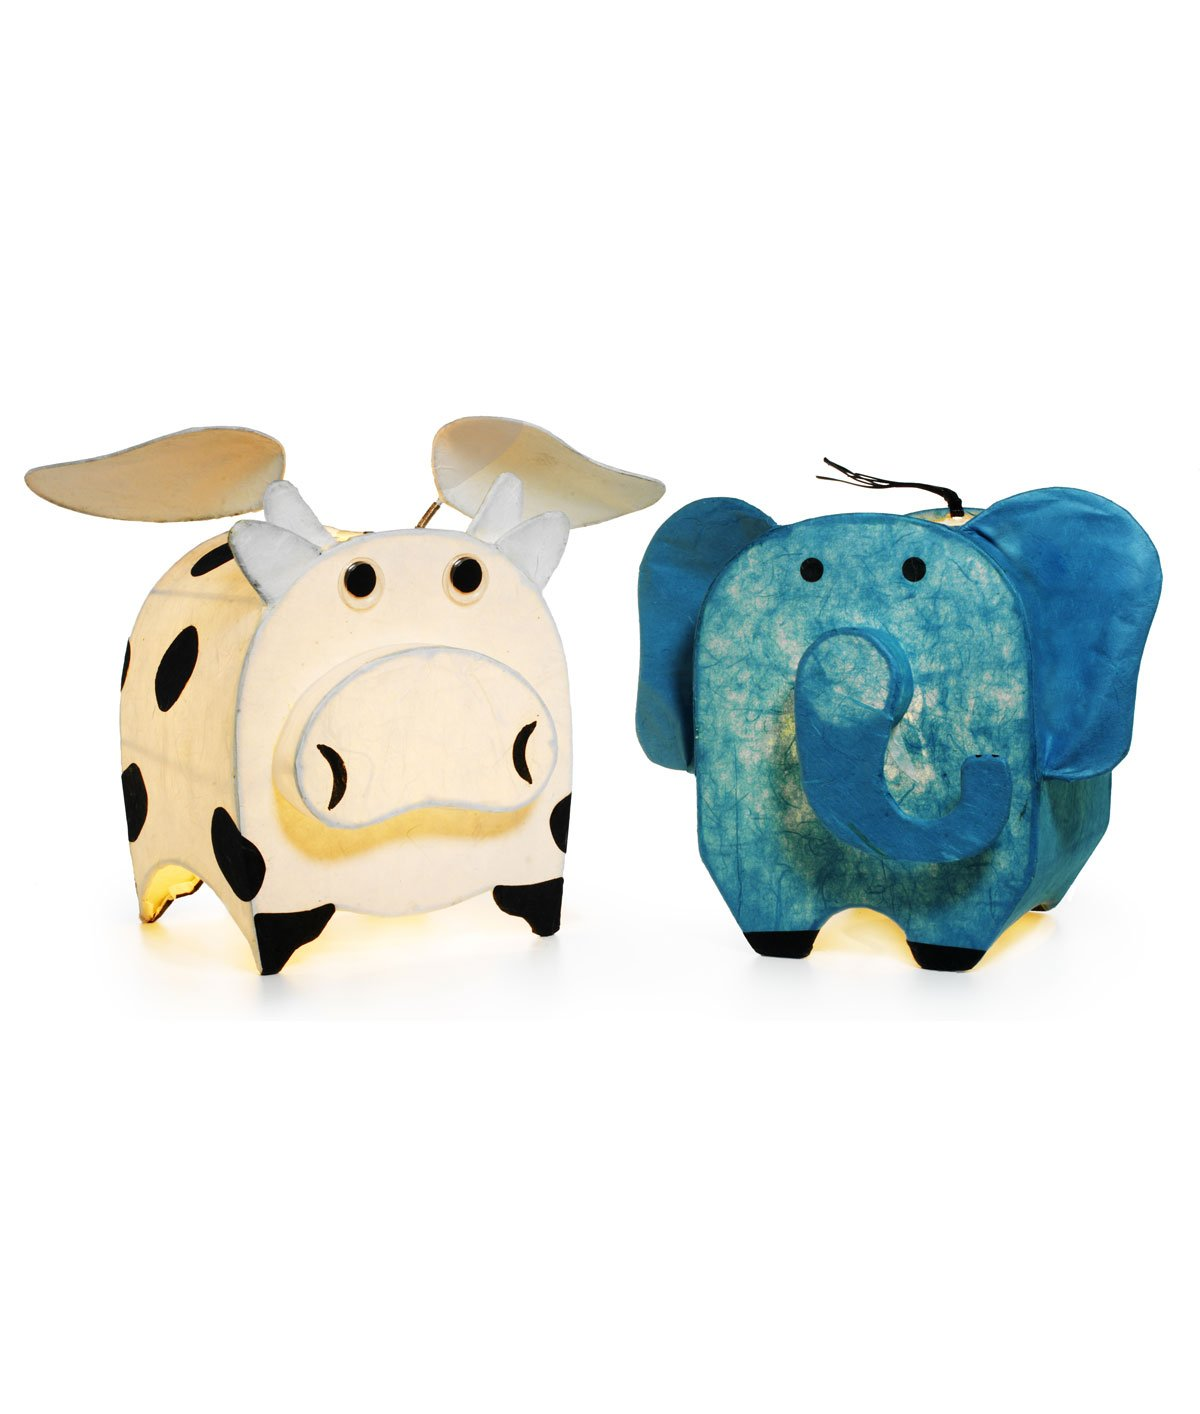 Cow-And-Elephant-Animal-Lamps-ww